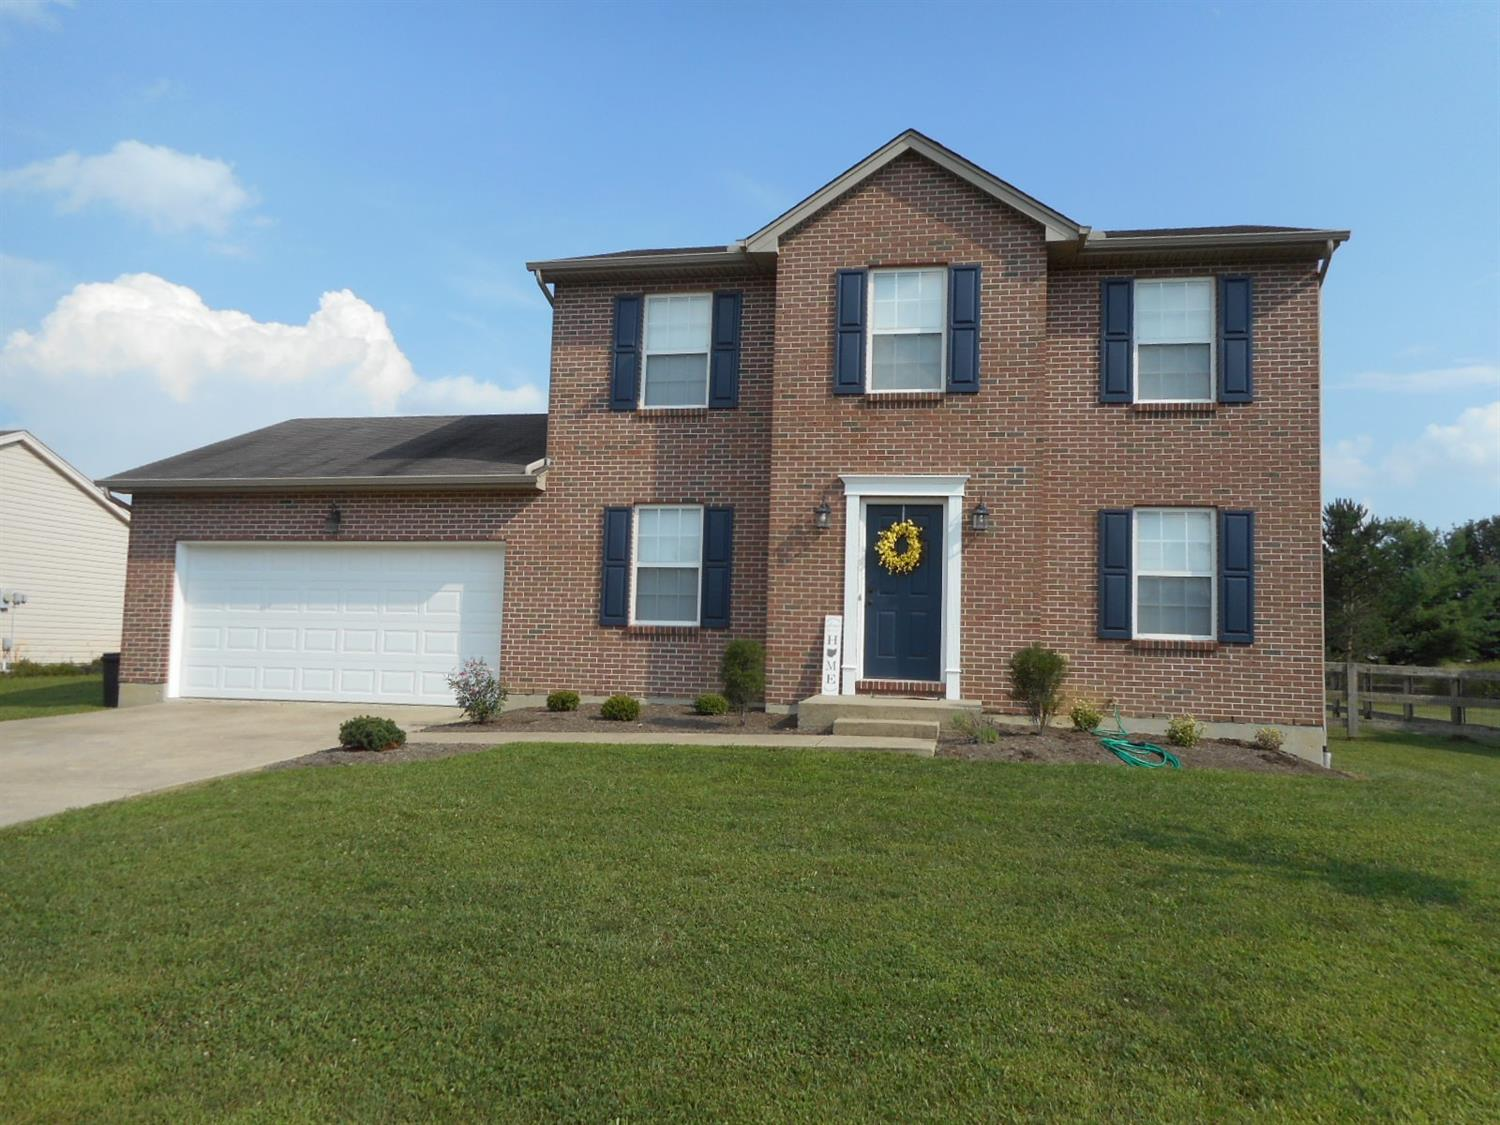 Property for sale at 5011 Sean Circle, Blanchester,  Ohio 45107